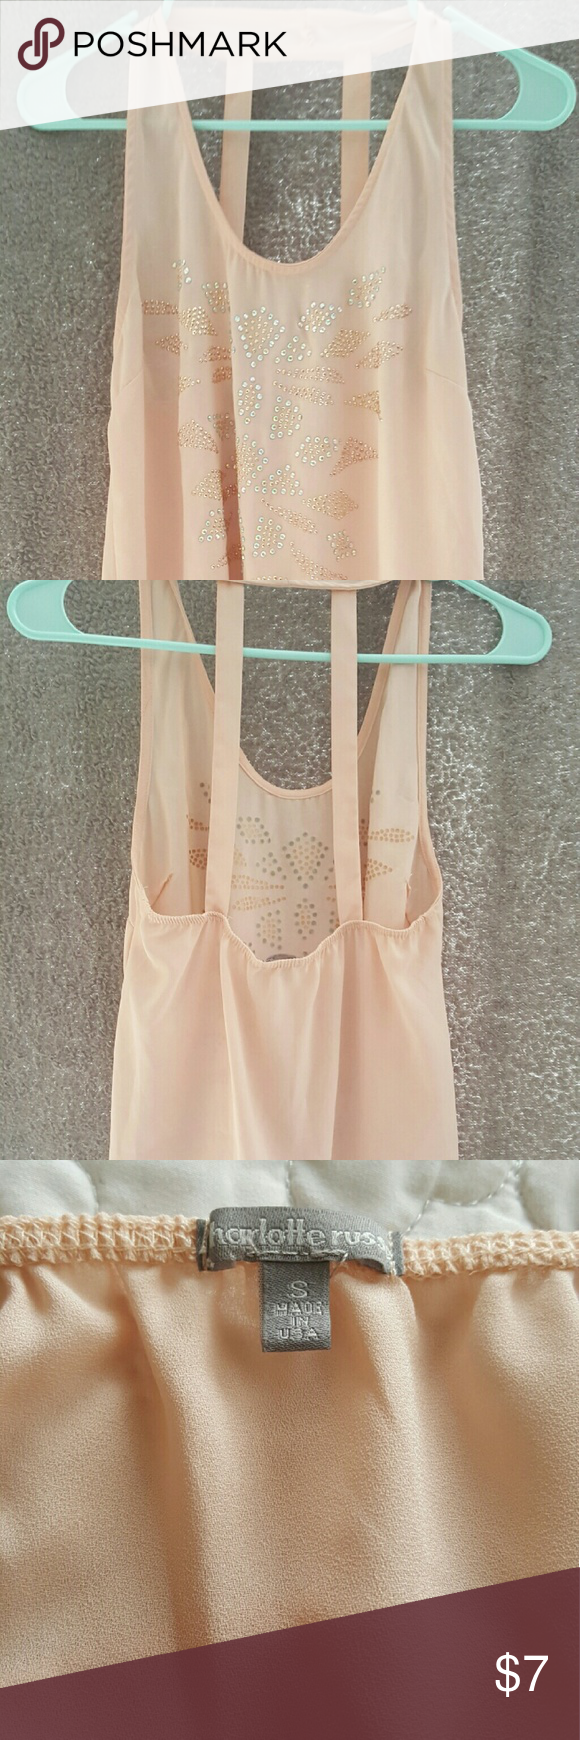 Charlotte Russe tank top Size S Charlotte Russe top 100%polyester.  Cute and very comfortable. Great details. Great color. Charlotte Russe Tops Tank Tops